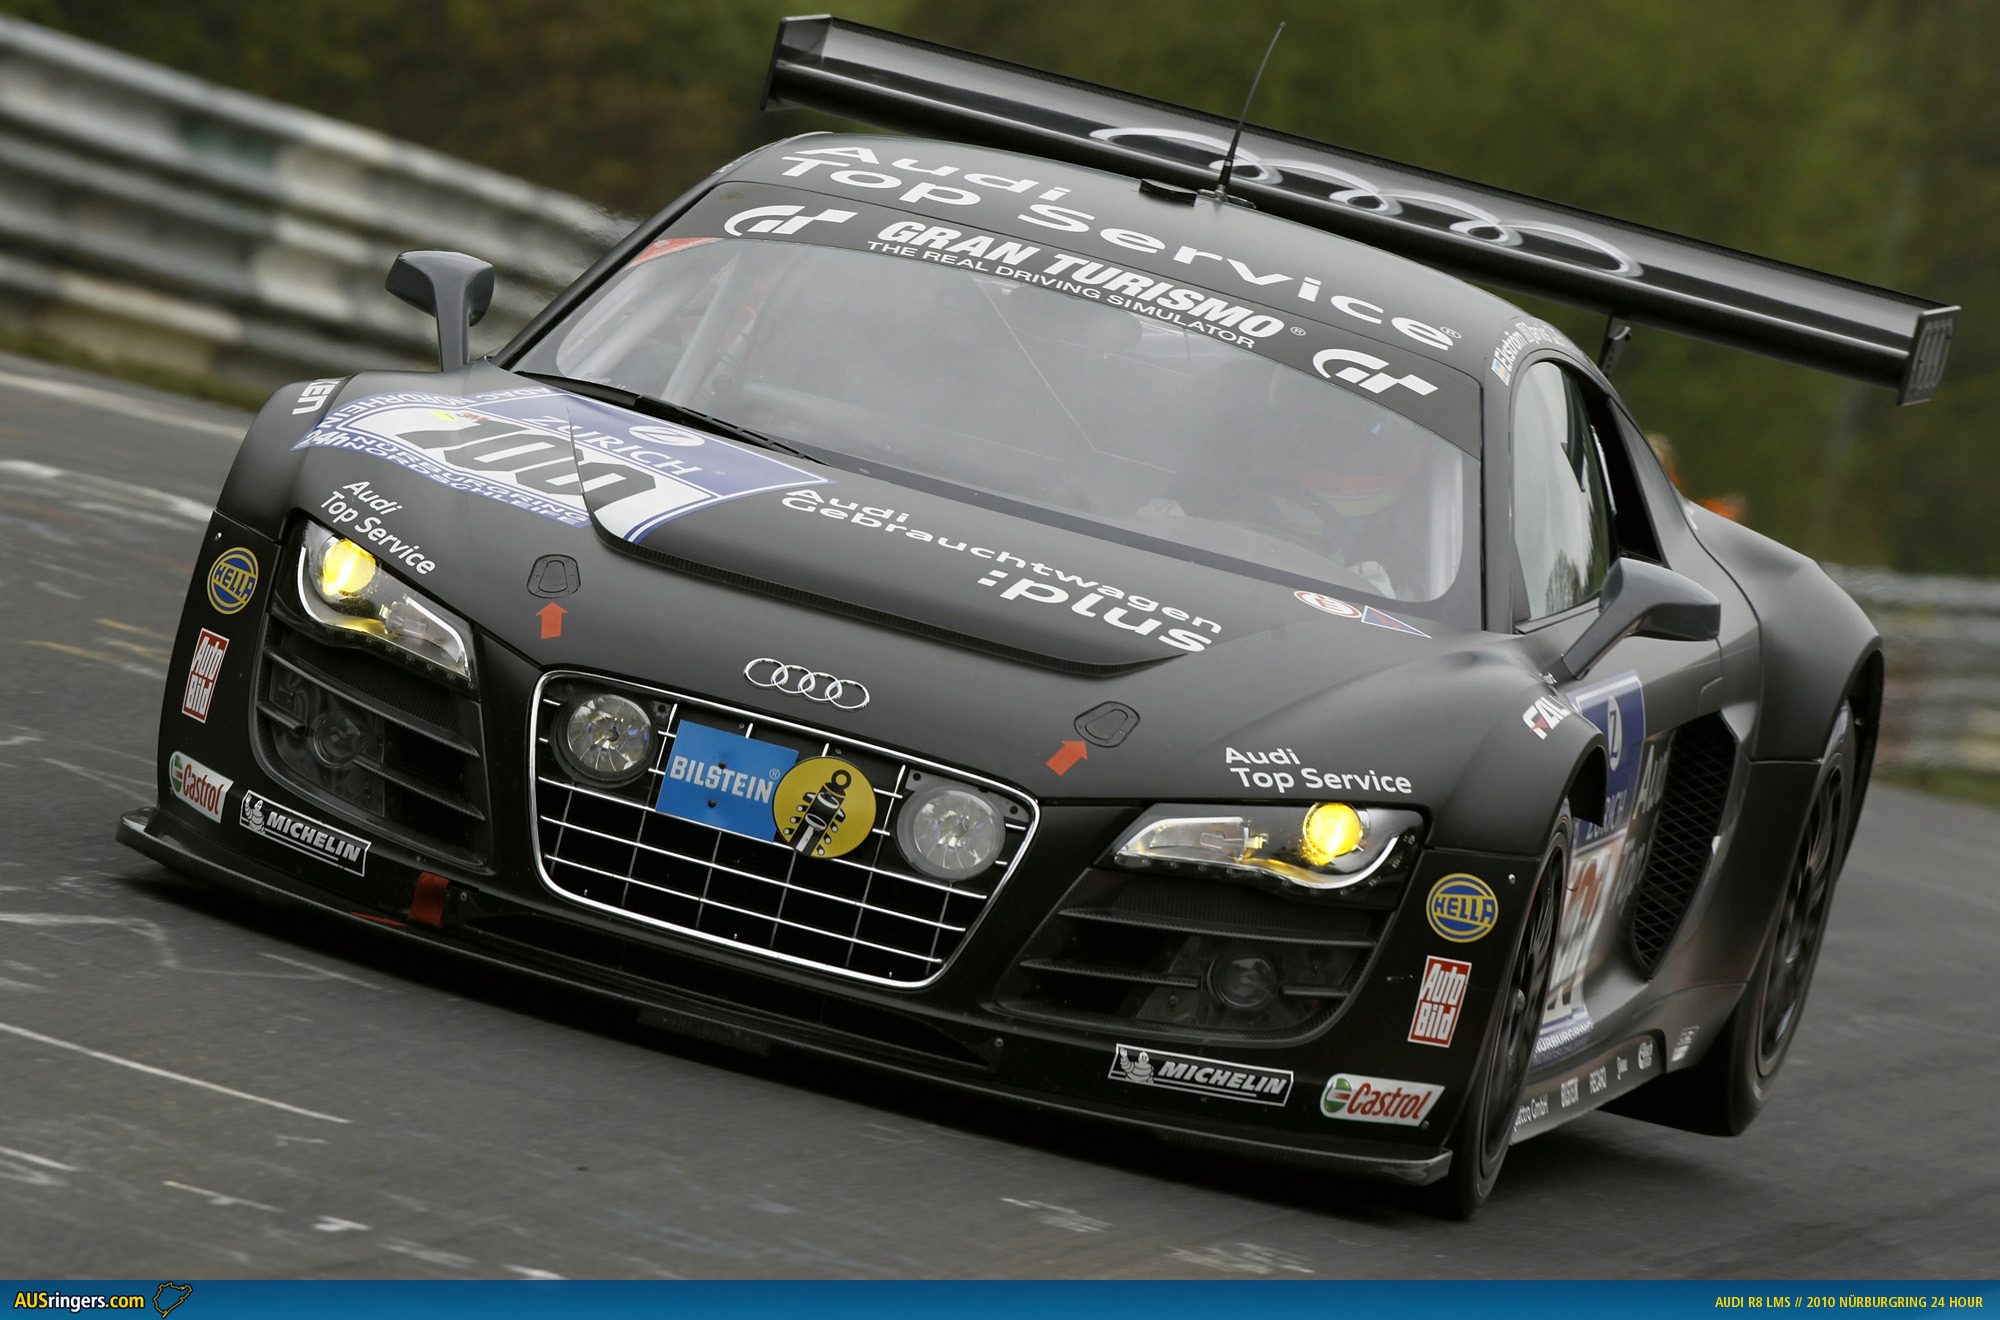 Audi r8 lms to start n24 from pole after dominant qualifying